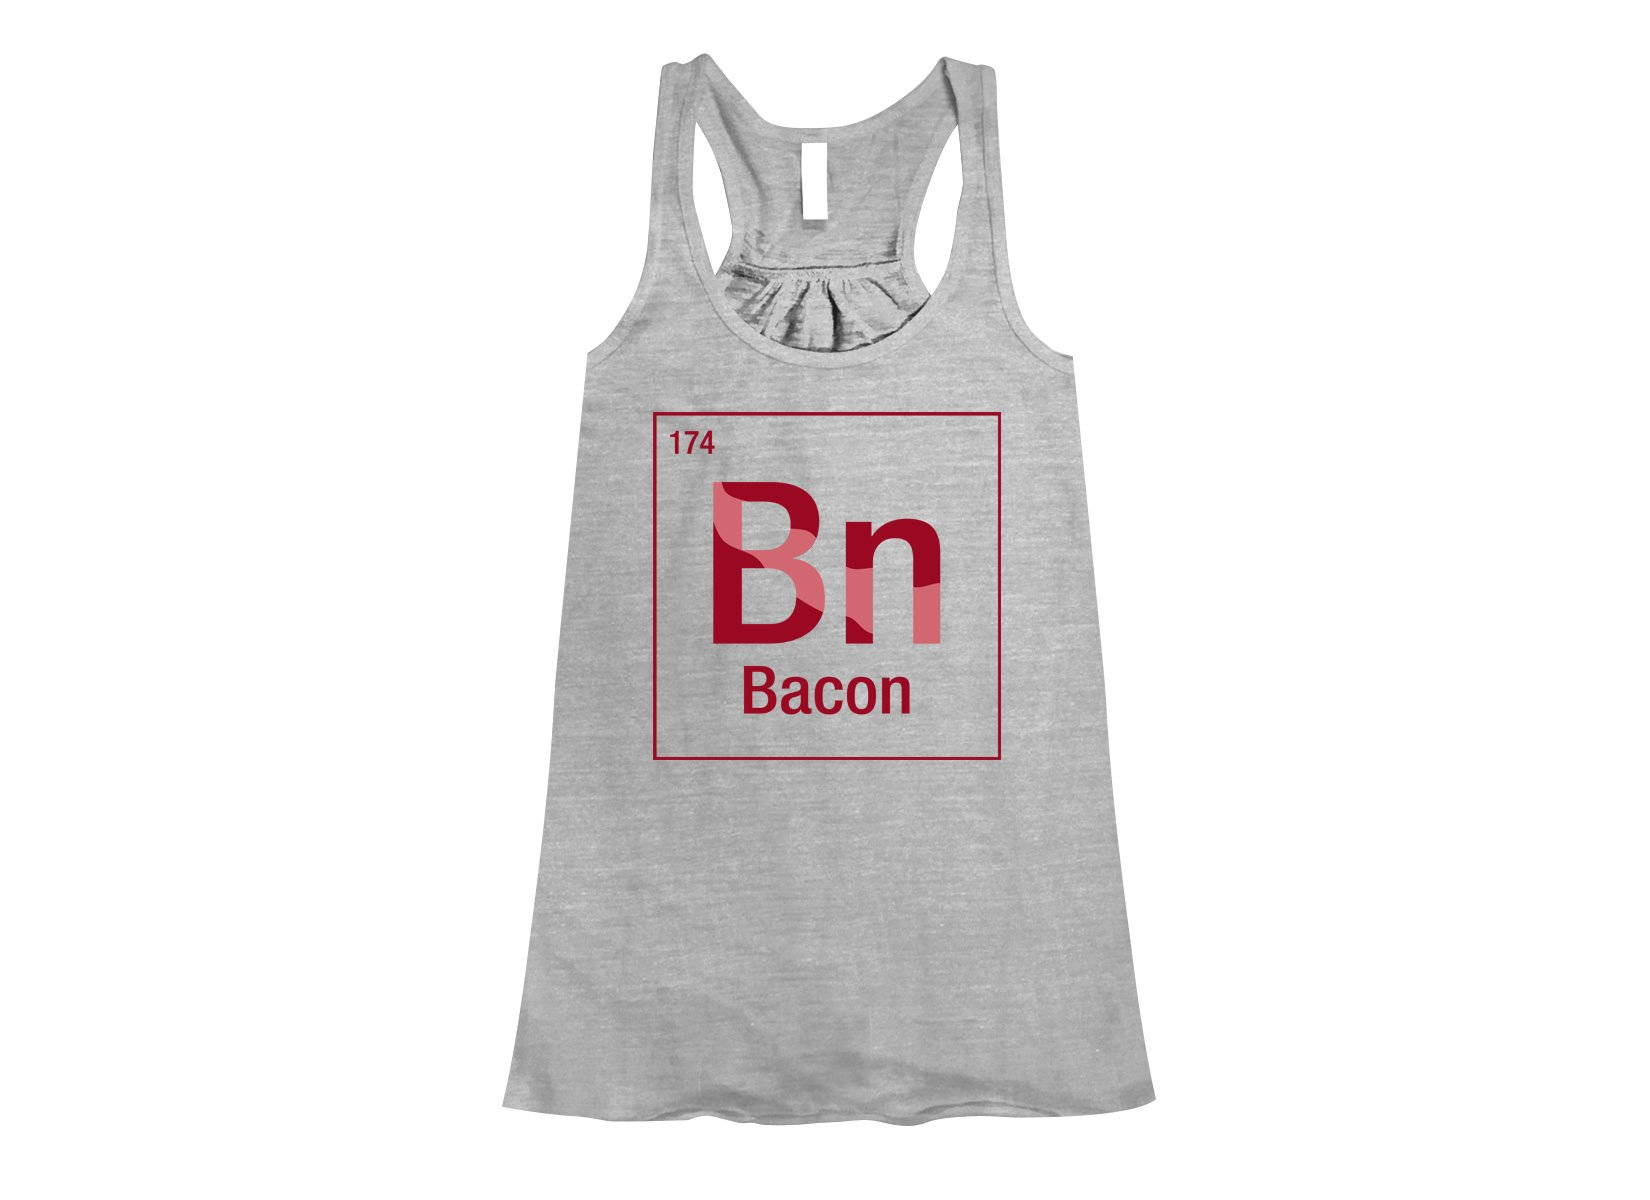 Bacon Element on Womens Tanks T-Shirt